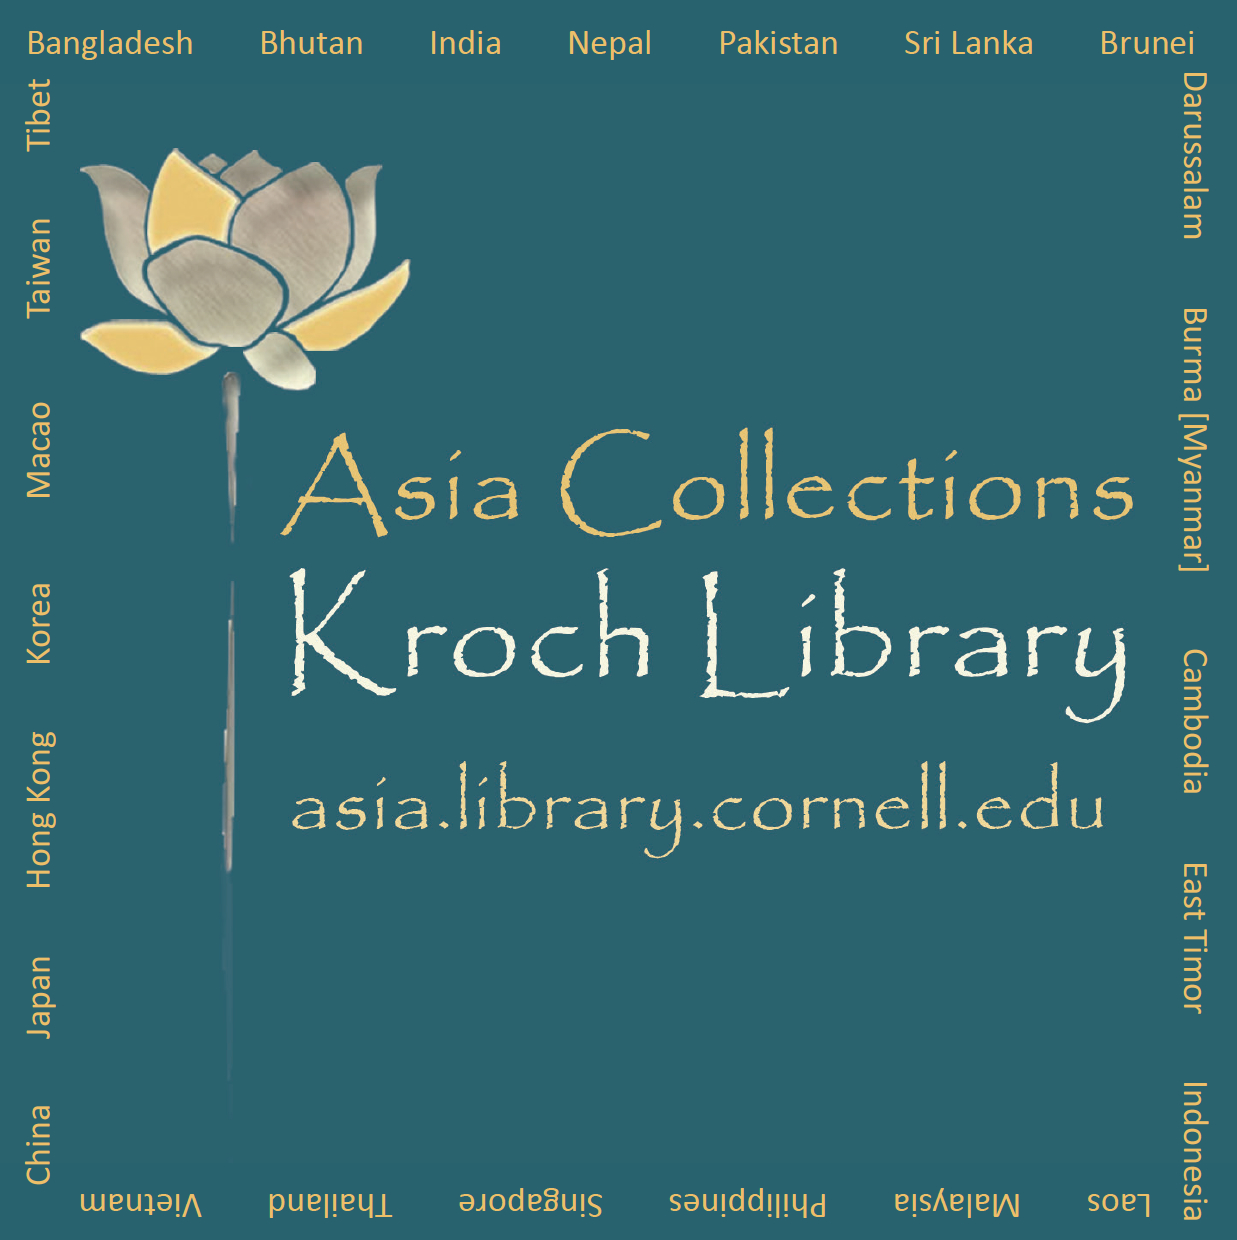 Kroch Library Asia Collections